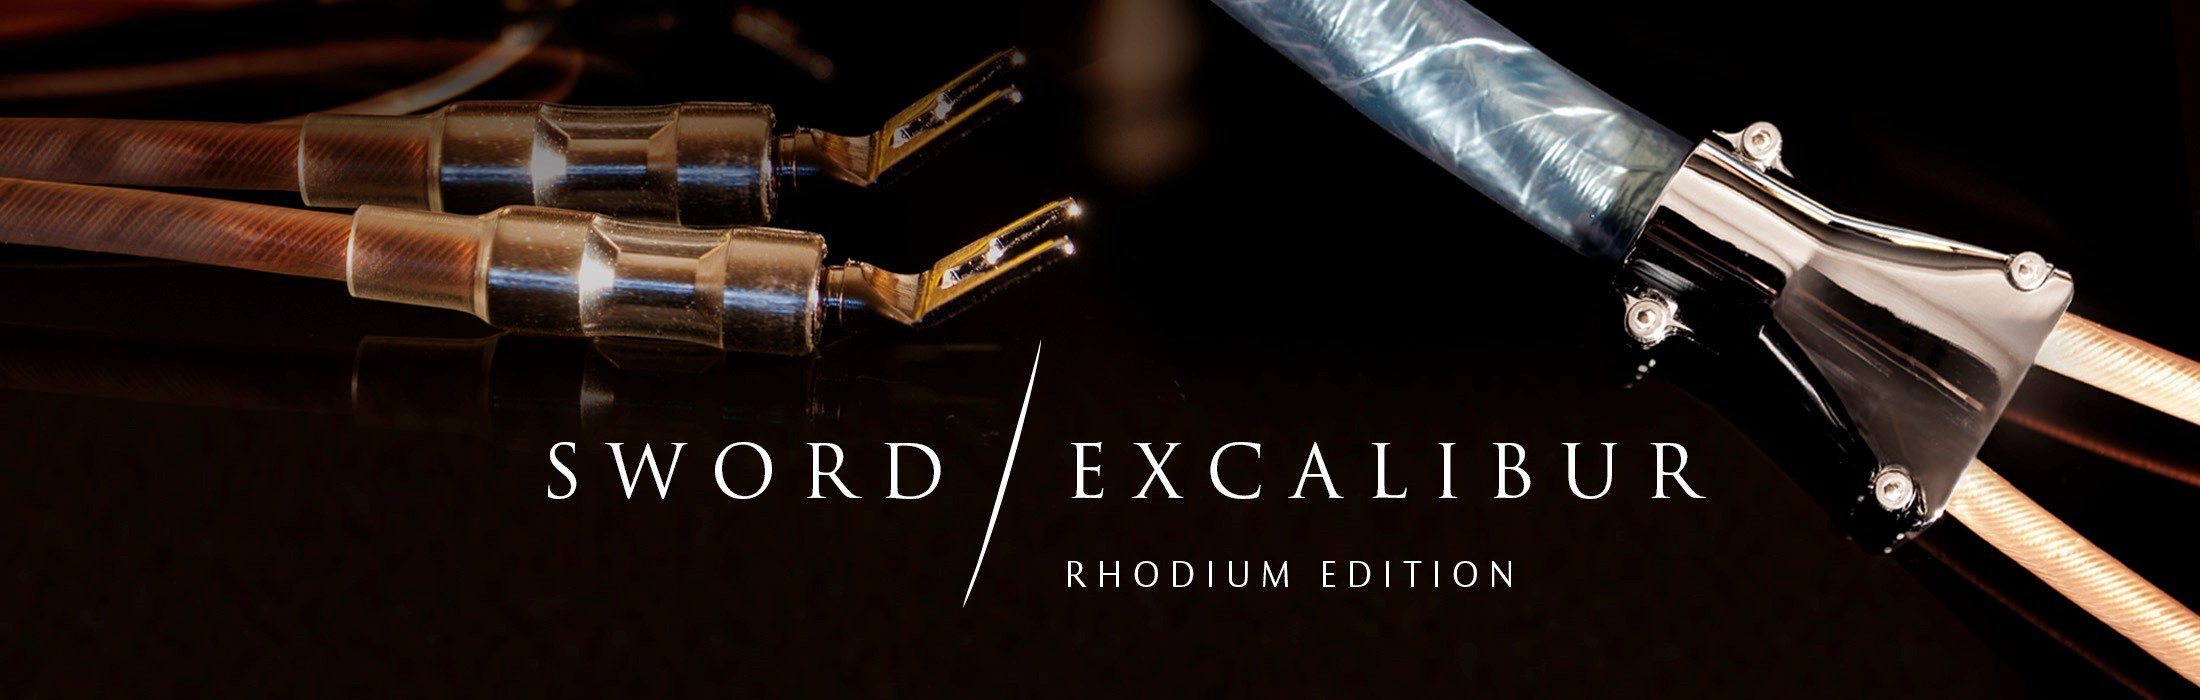 sword-excalibur1